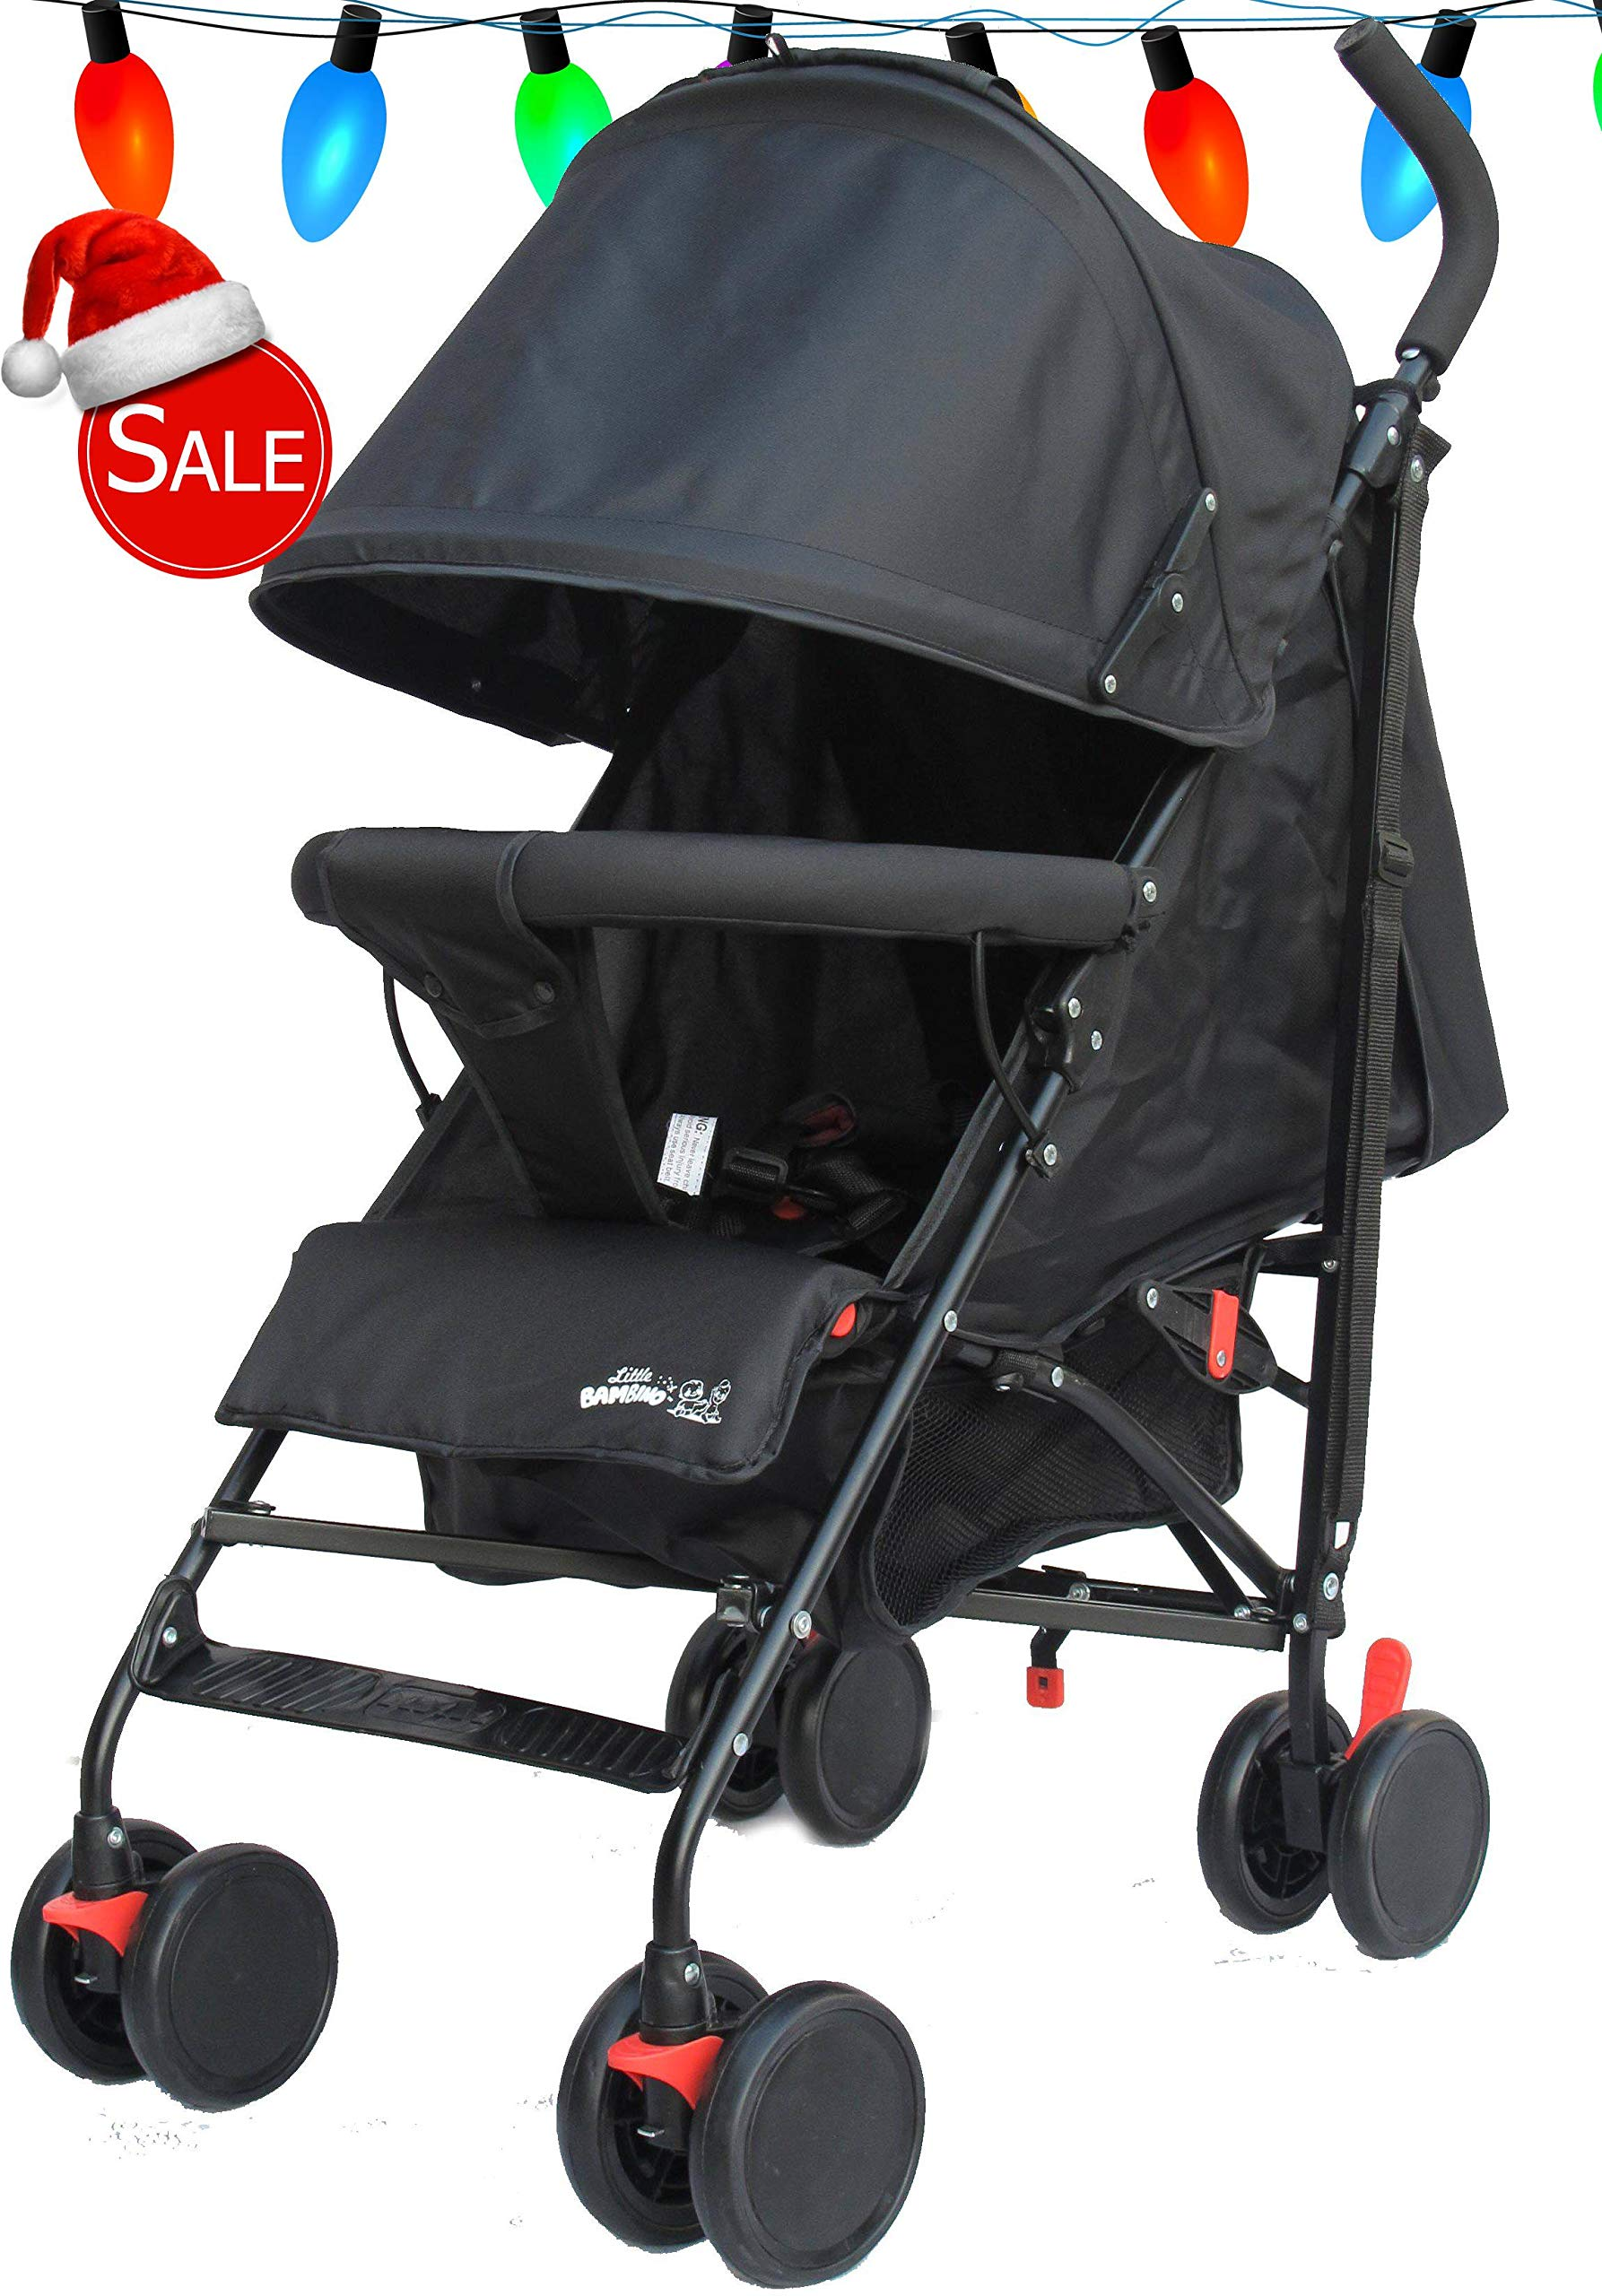 Stroller for Kids Lightweight Buggy Easy Fold Travel Stroller Buggy Foldable for Airplane Travel Cabin Size(Black) Little Bambino ✨Extendable upf 50+ sun canopy and built-in sun visor ✨EASY USAGE - One-hand foldable buggy makes taking your baby for travels or walks a simple pleasure. It could stand on its own so you could take care of your baby with less things to worry about. ✨ADJUSTABLE BACKREST - Travel stroller backrest can be adjusted. Suitable for children from 0 to 36 months 1